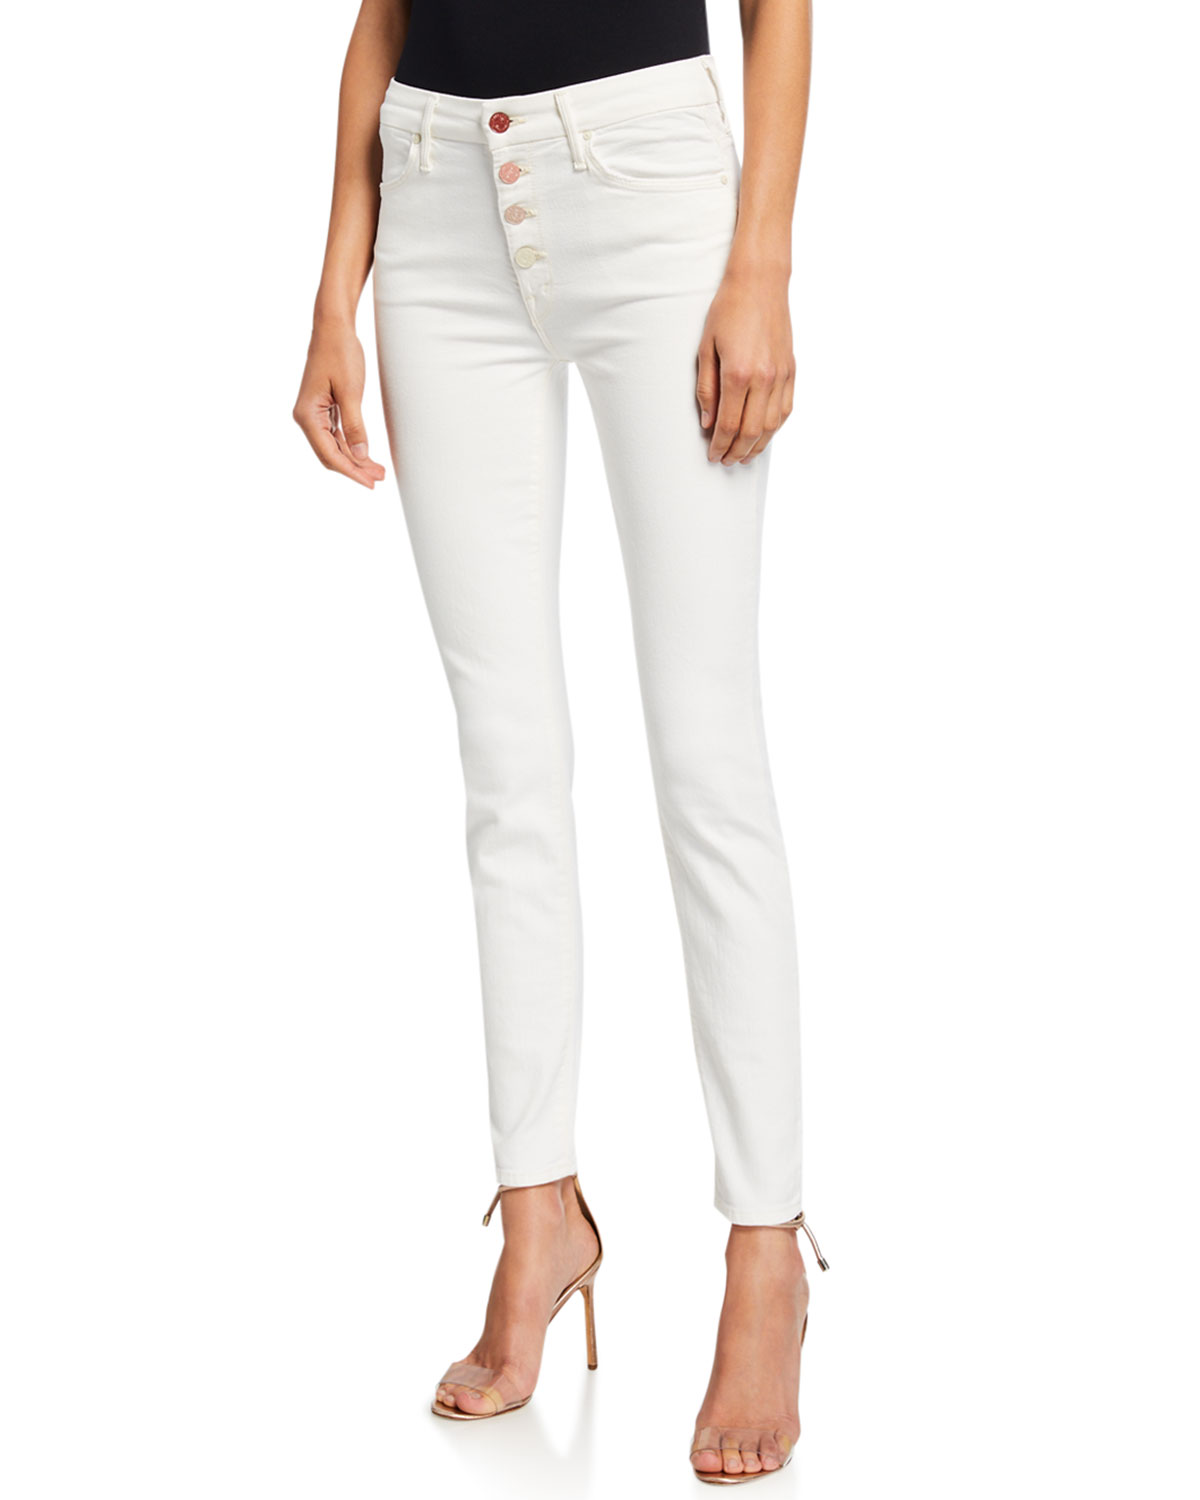 Mother Jeans THE PIXIE MID-RISE SKINNY JEANS W/ BUTTON FLY